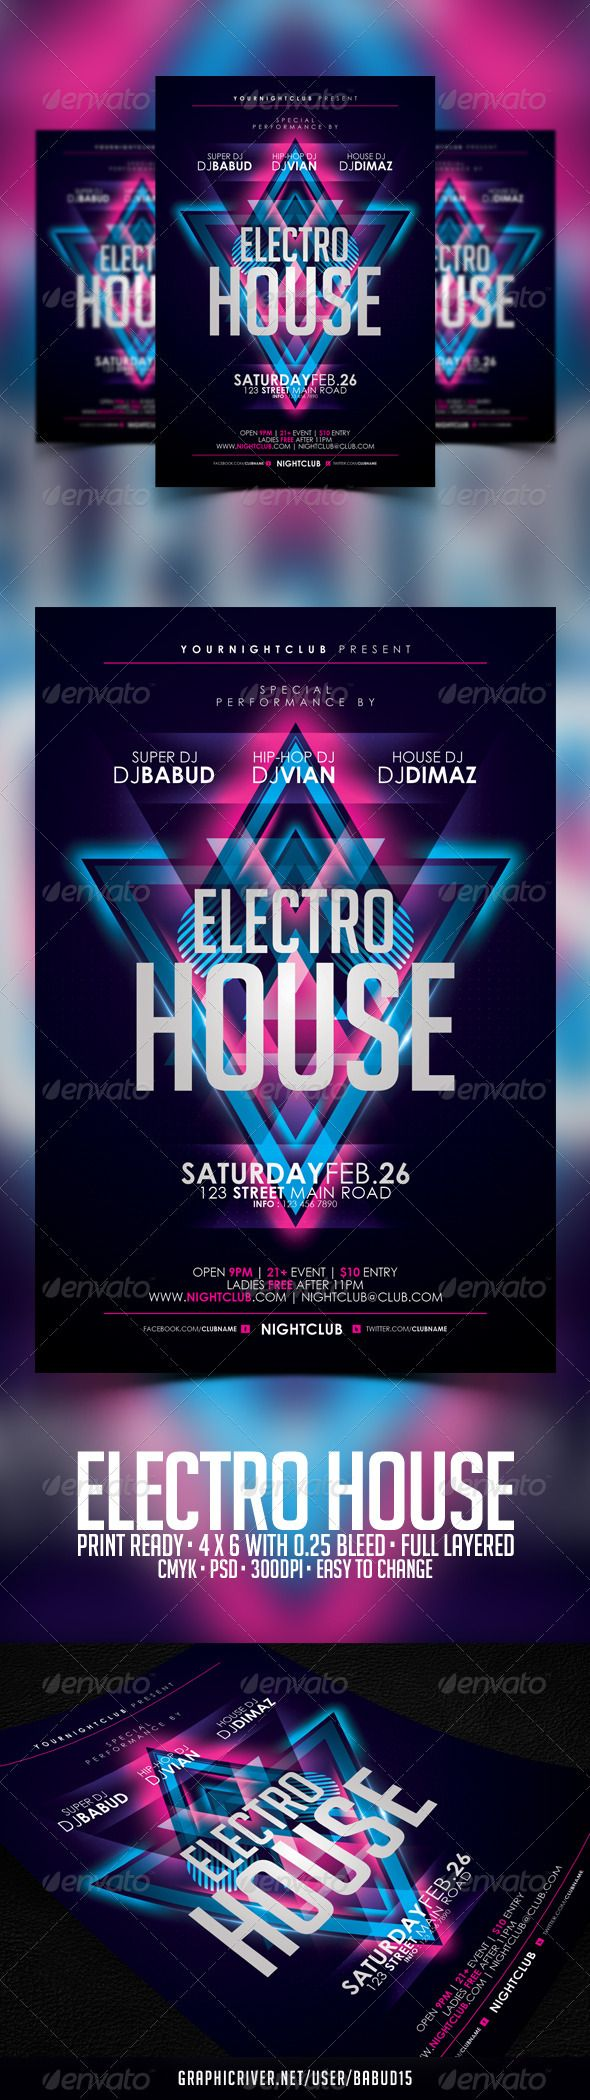 Electro House Flyer Template